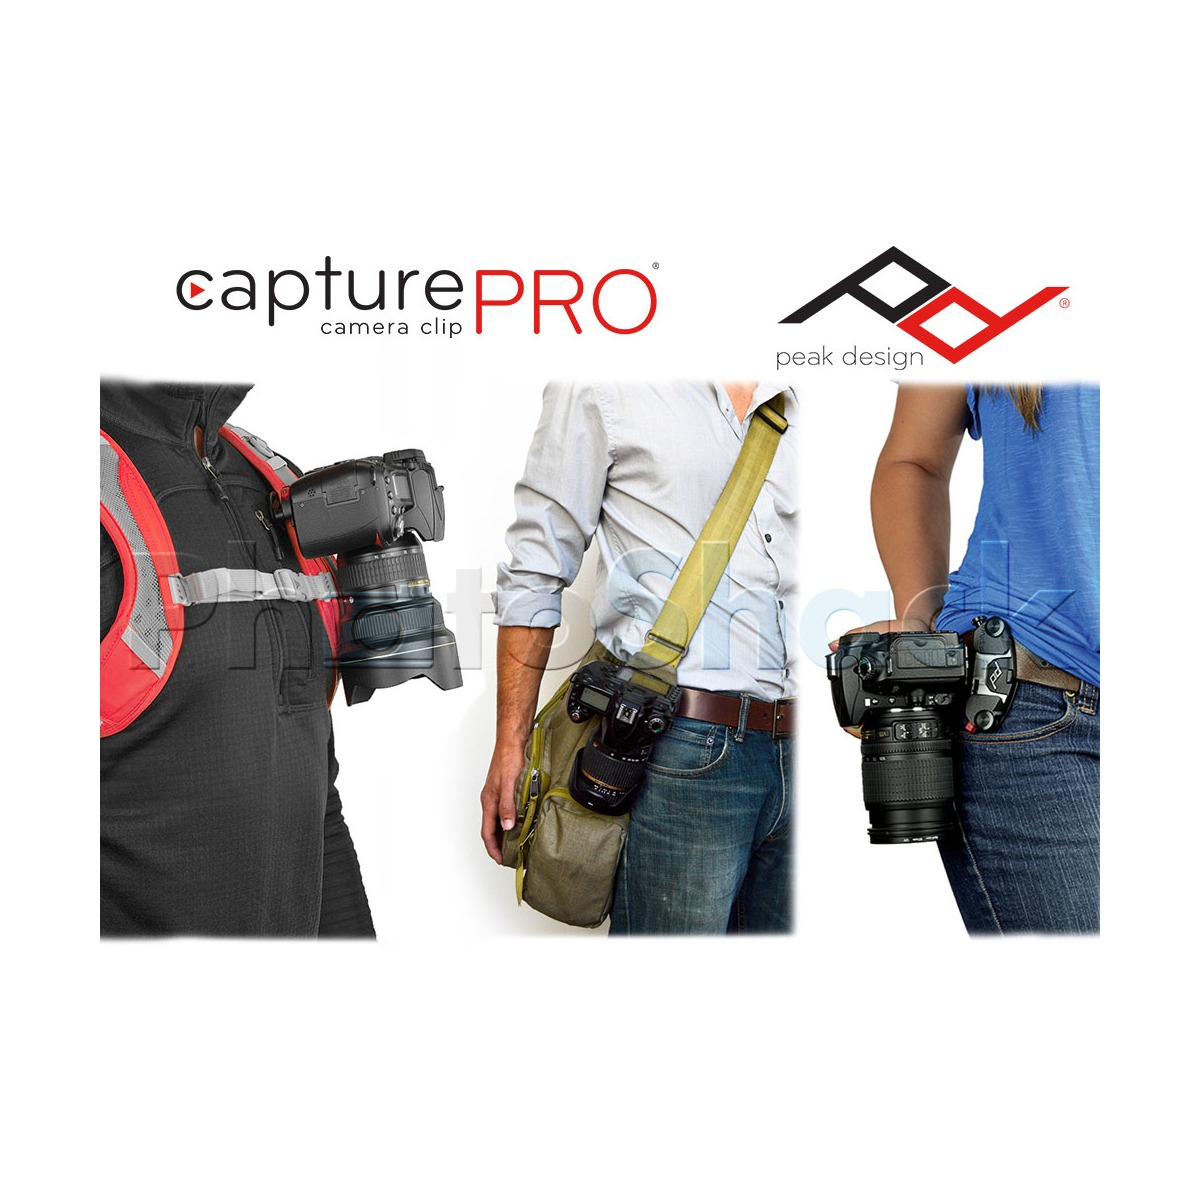 Peak Design CapturePRO Camera Clip with Universal PROplate